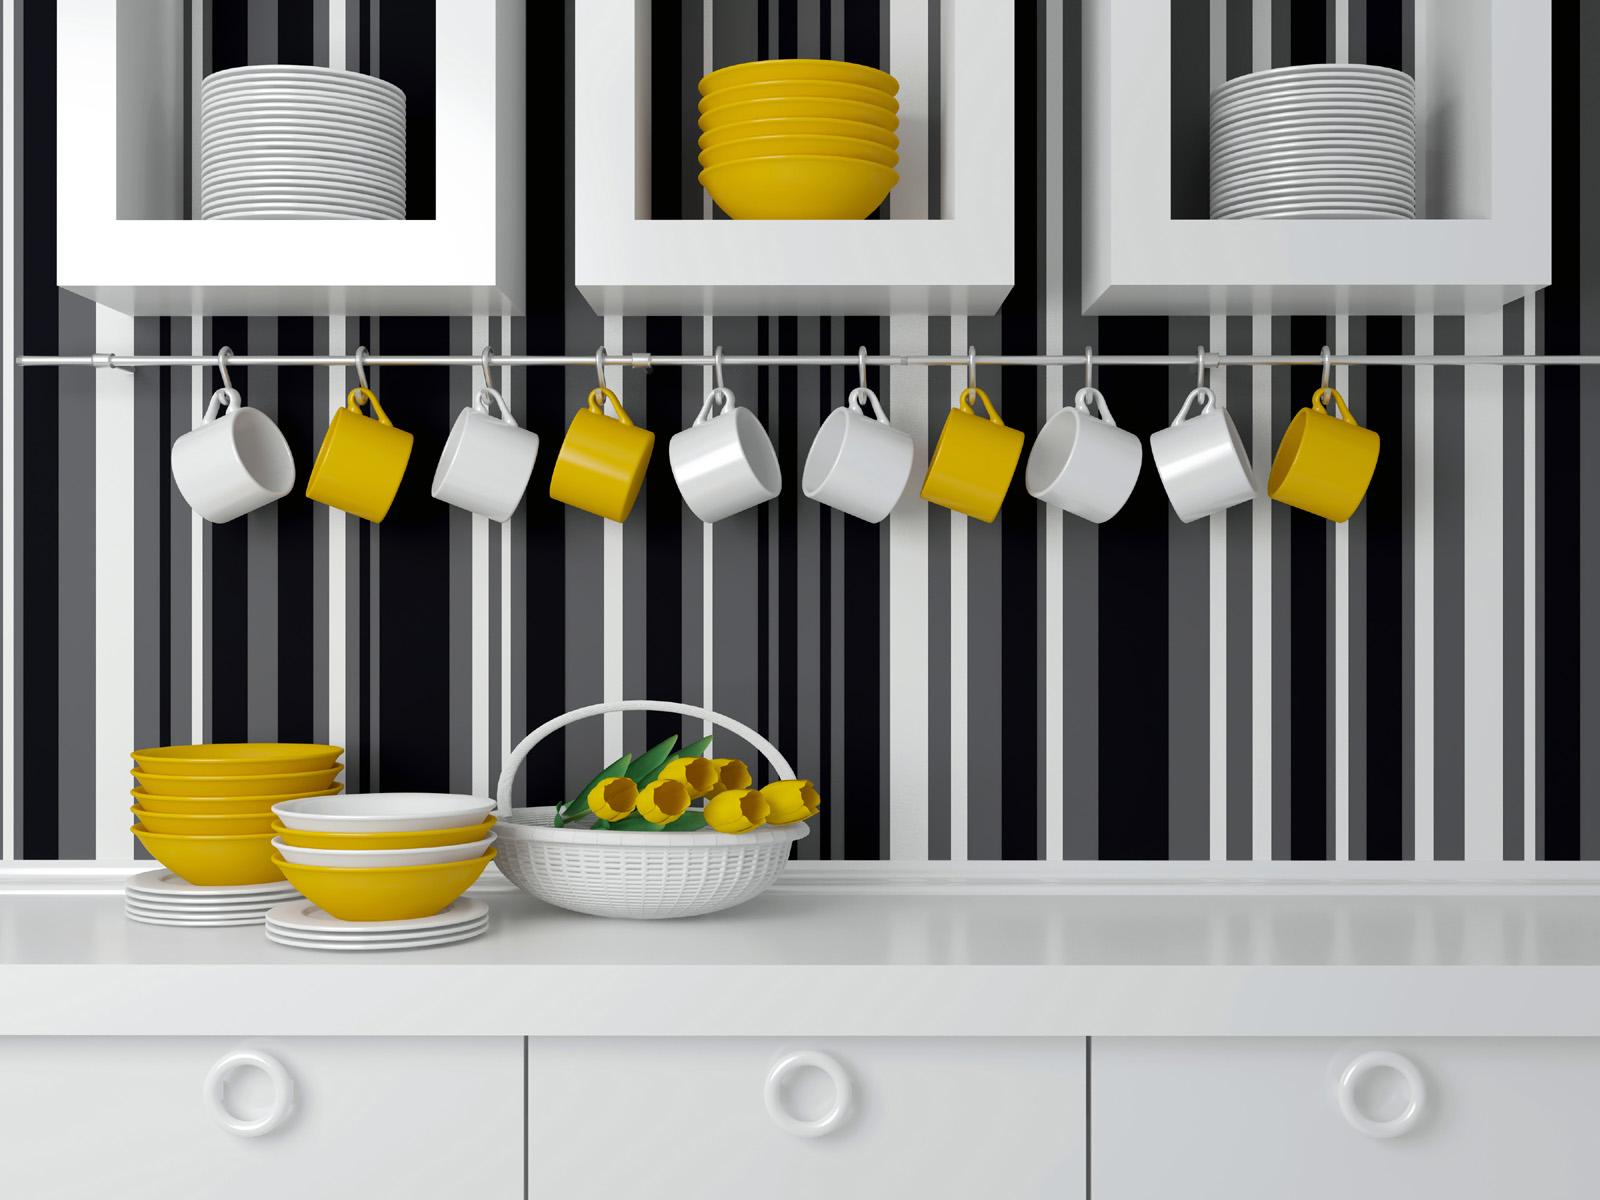 Kitchen bowls and cups hang 50959